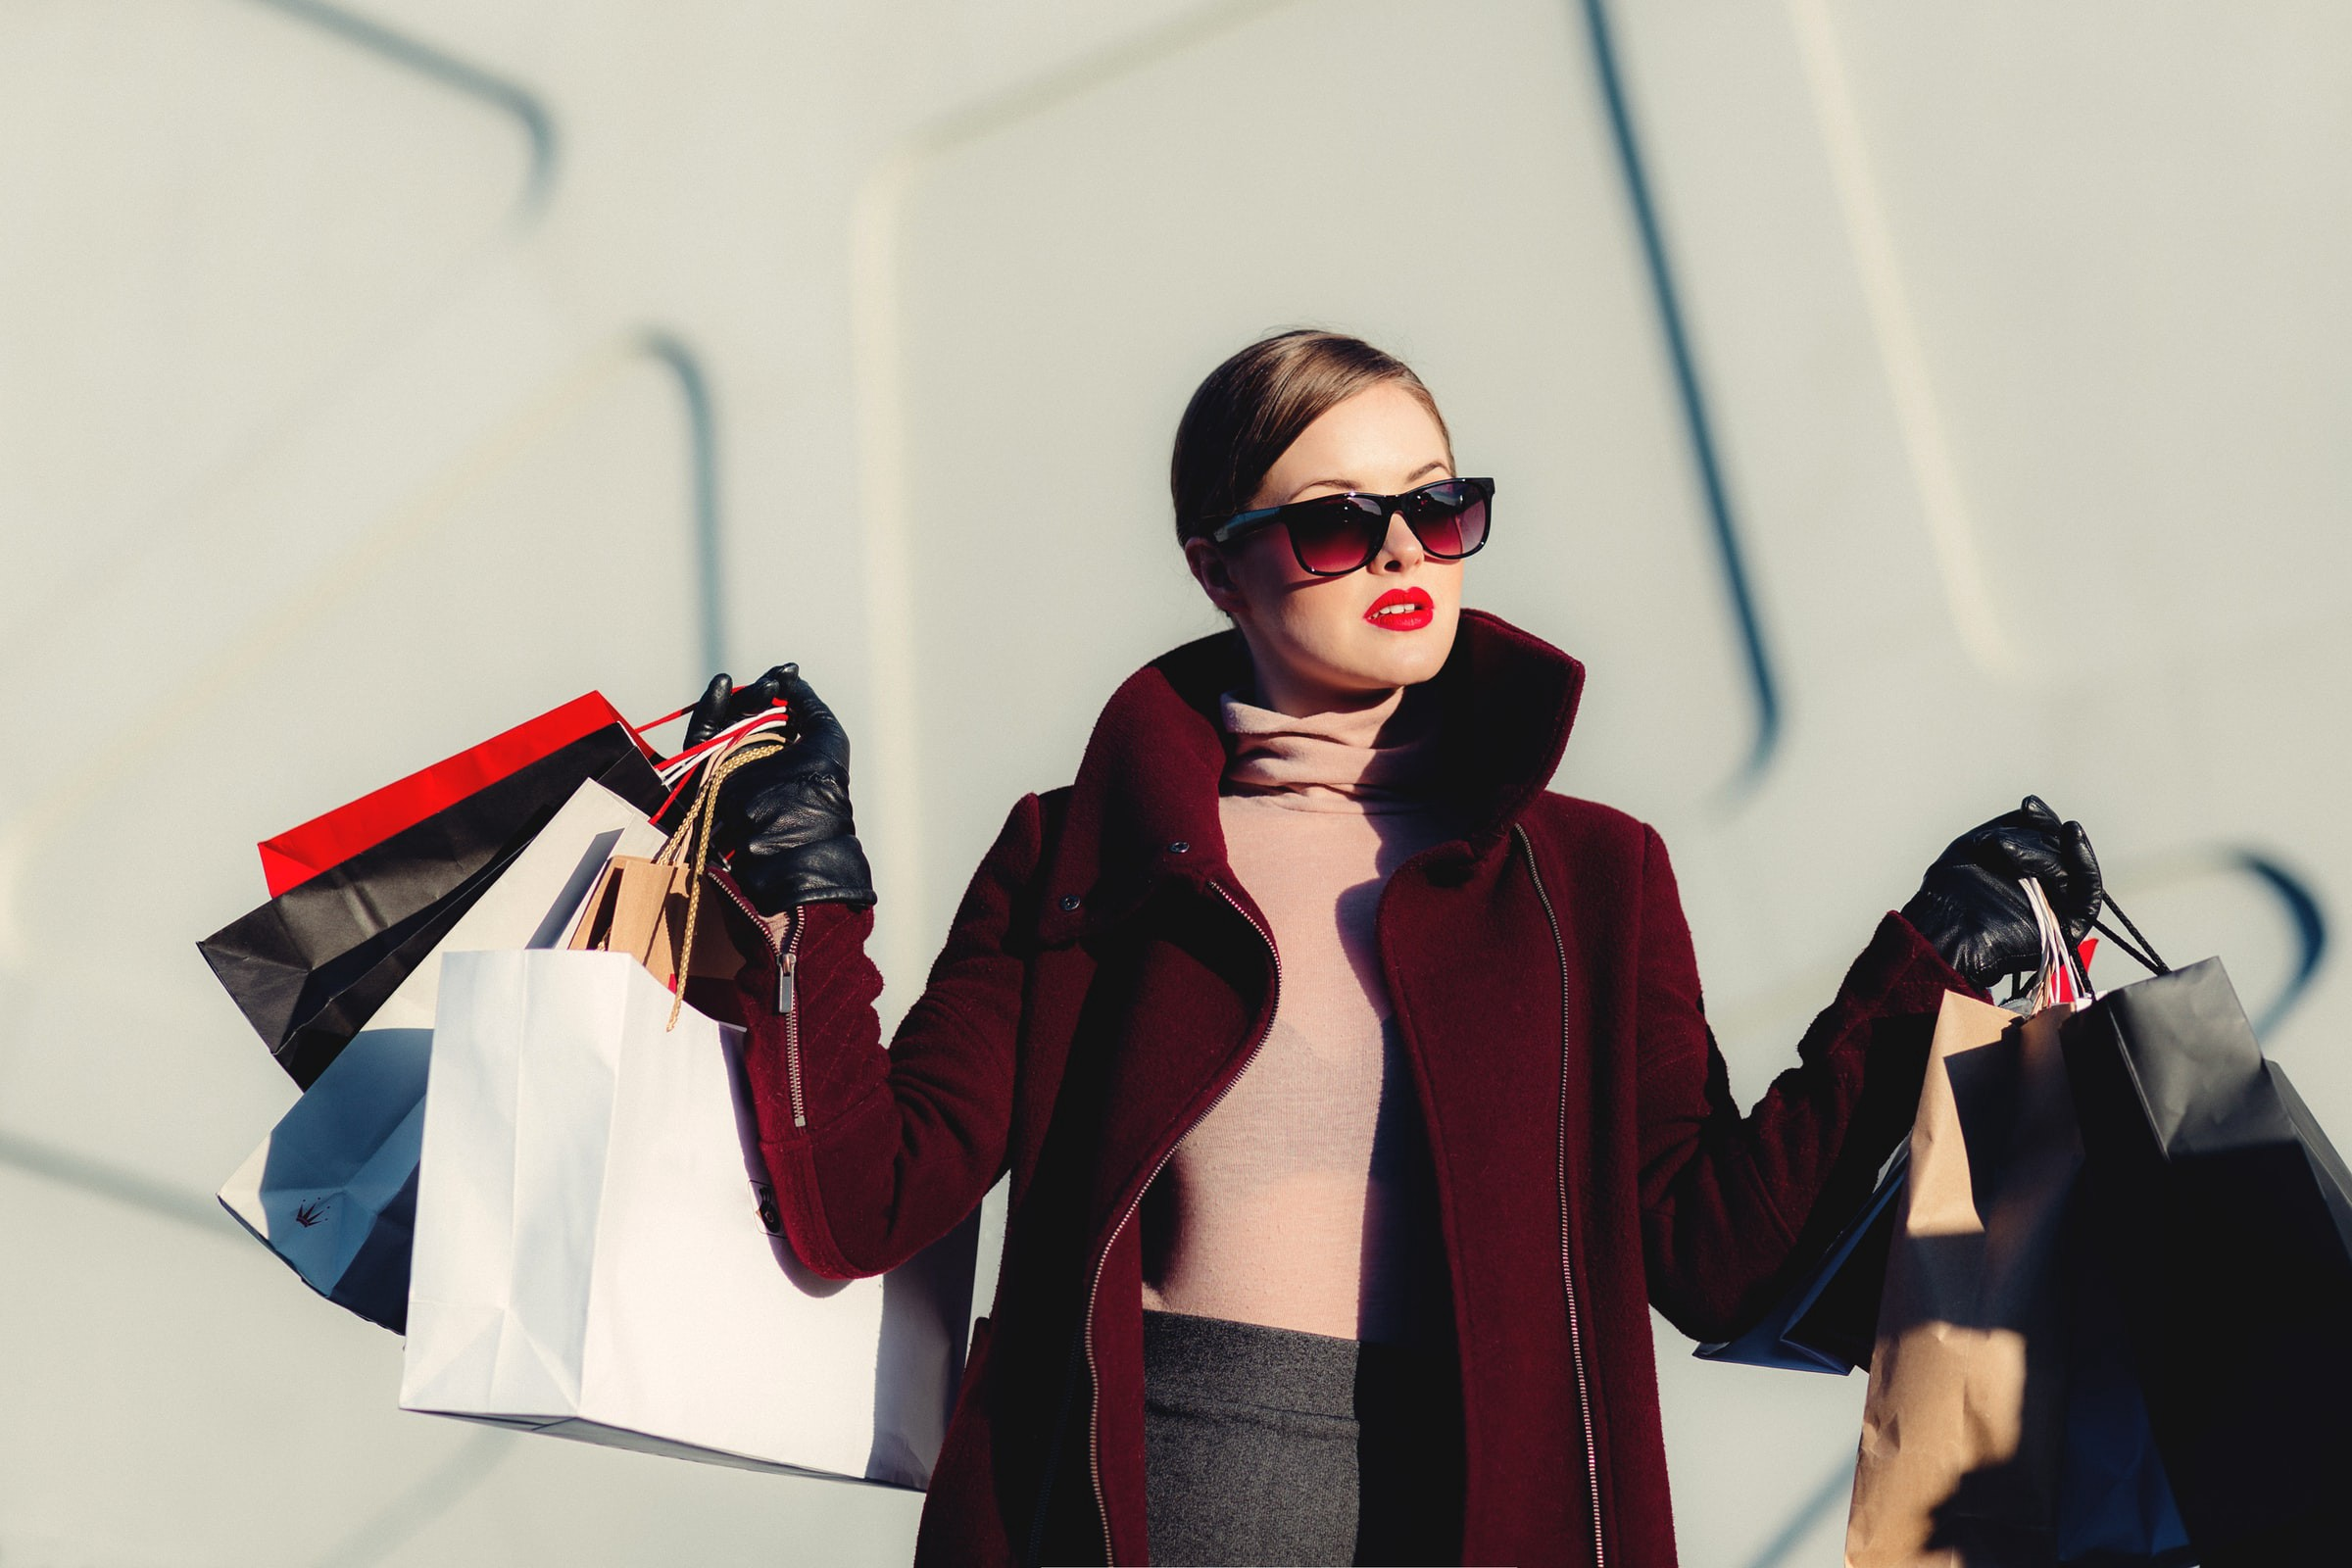 A posh nicely dressed blonde woman that just went shopping, holding multiple bags in each hand.